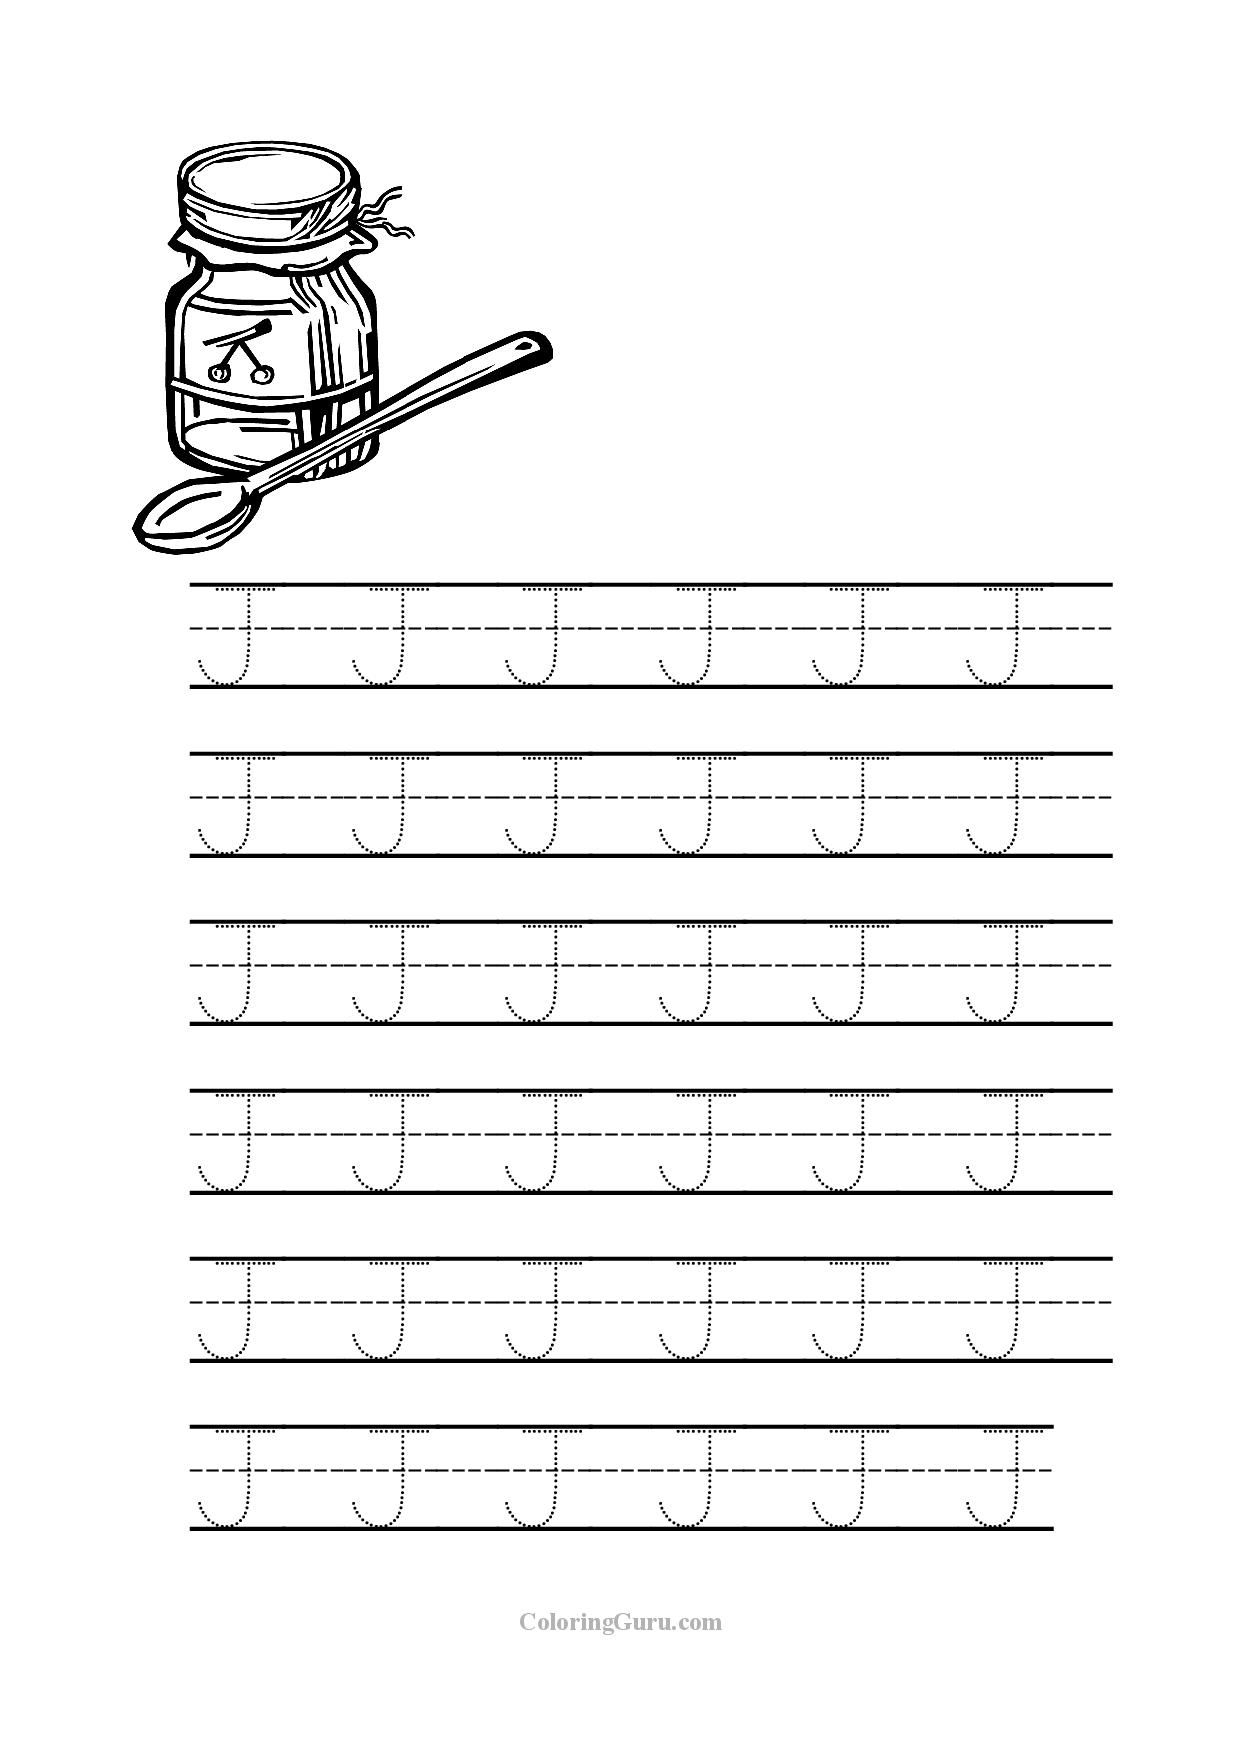 Letter J Coloring Pages for Preschool  Download 11g - To print for your project